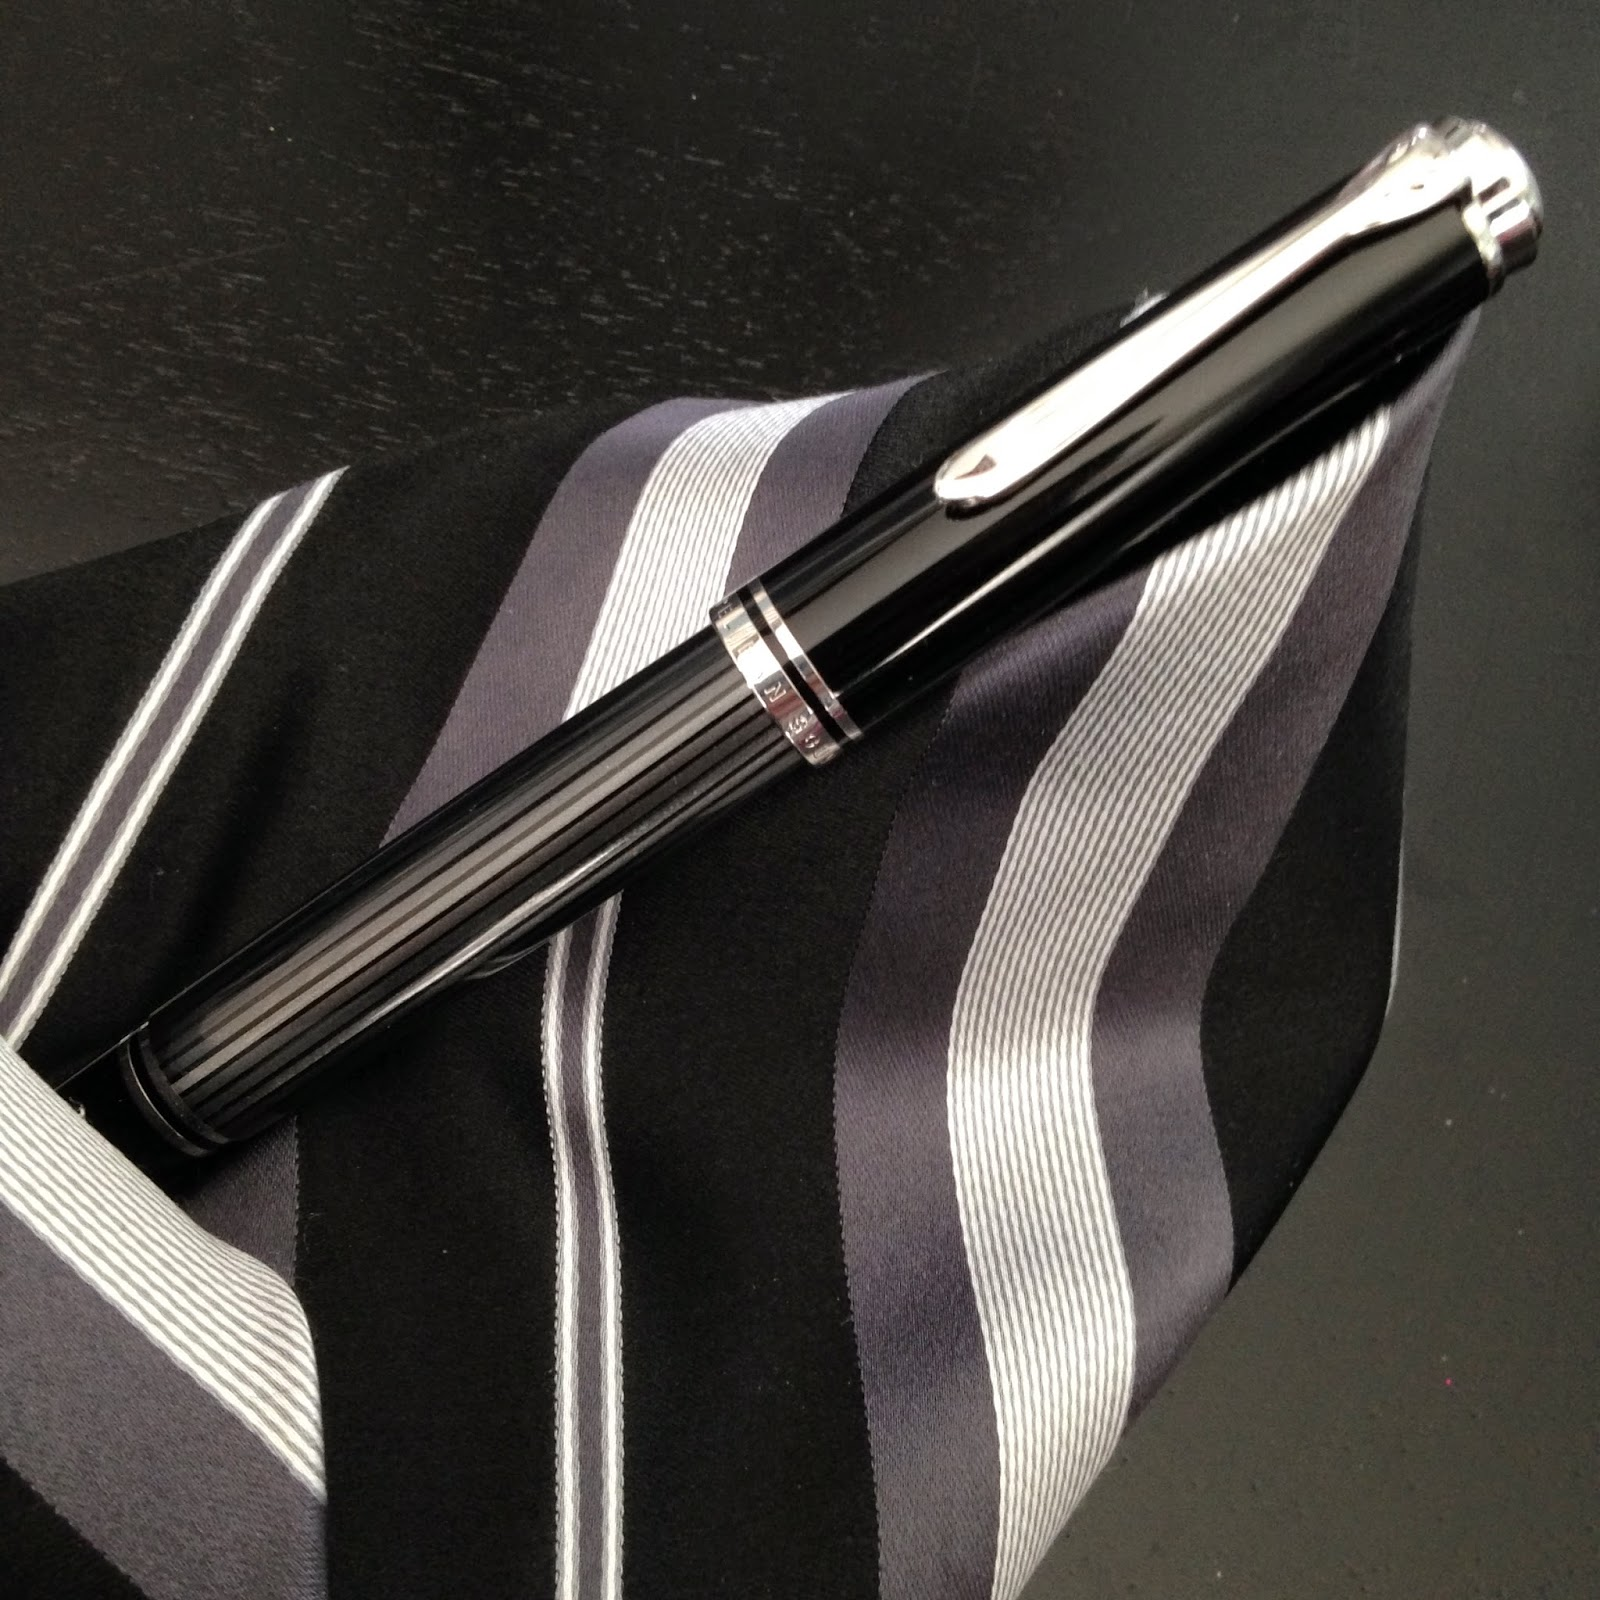 Pelikan Souverän 805 Stresemann Fountain Pen Review